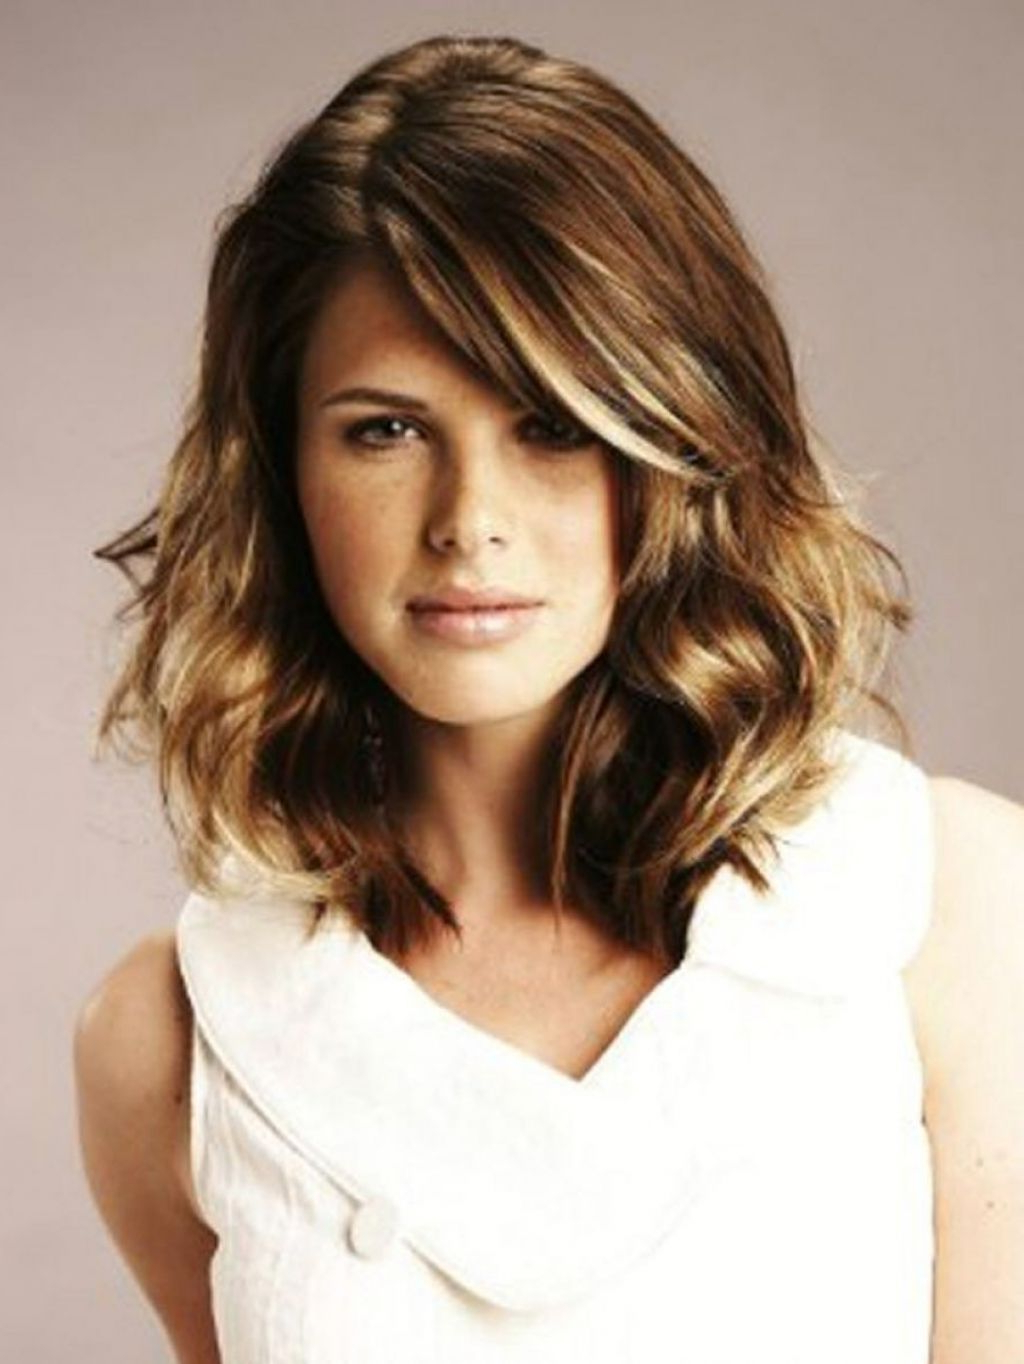 Hair Cuts : Best Bob Haircuts For Thick Curly Hair Medium Cuts Wavy Within Well Known Medium Haircuts With Curly Hair (View 12 of 20)